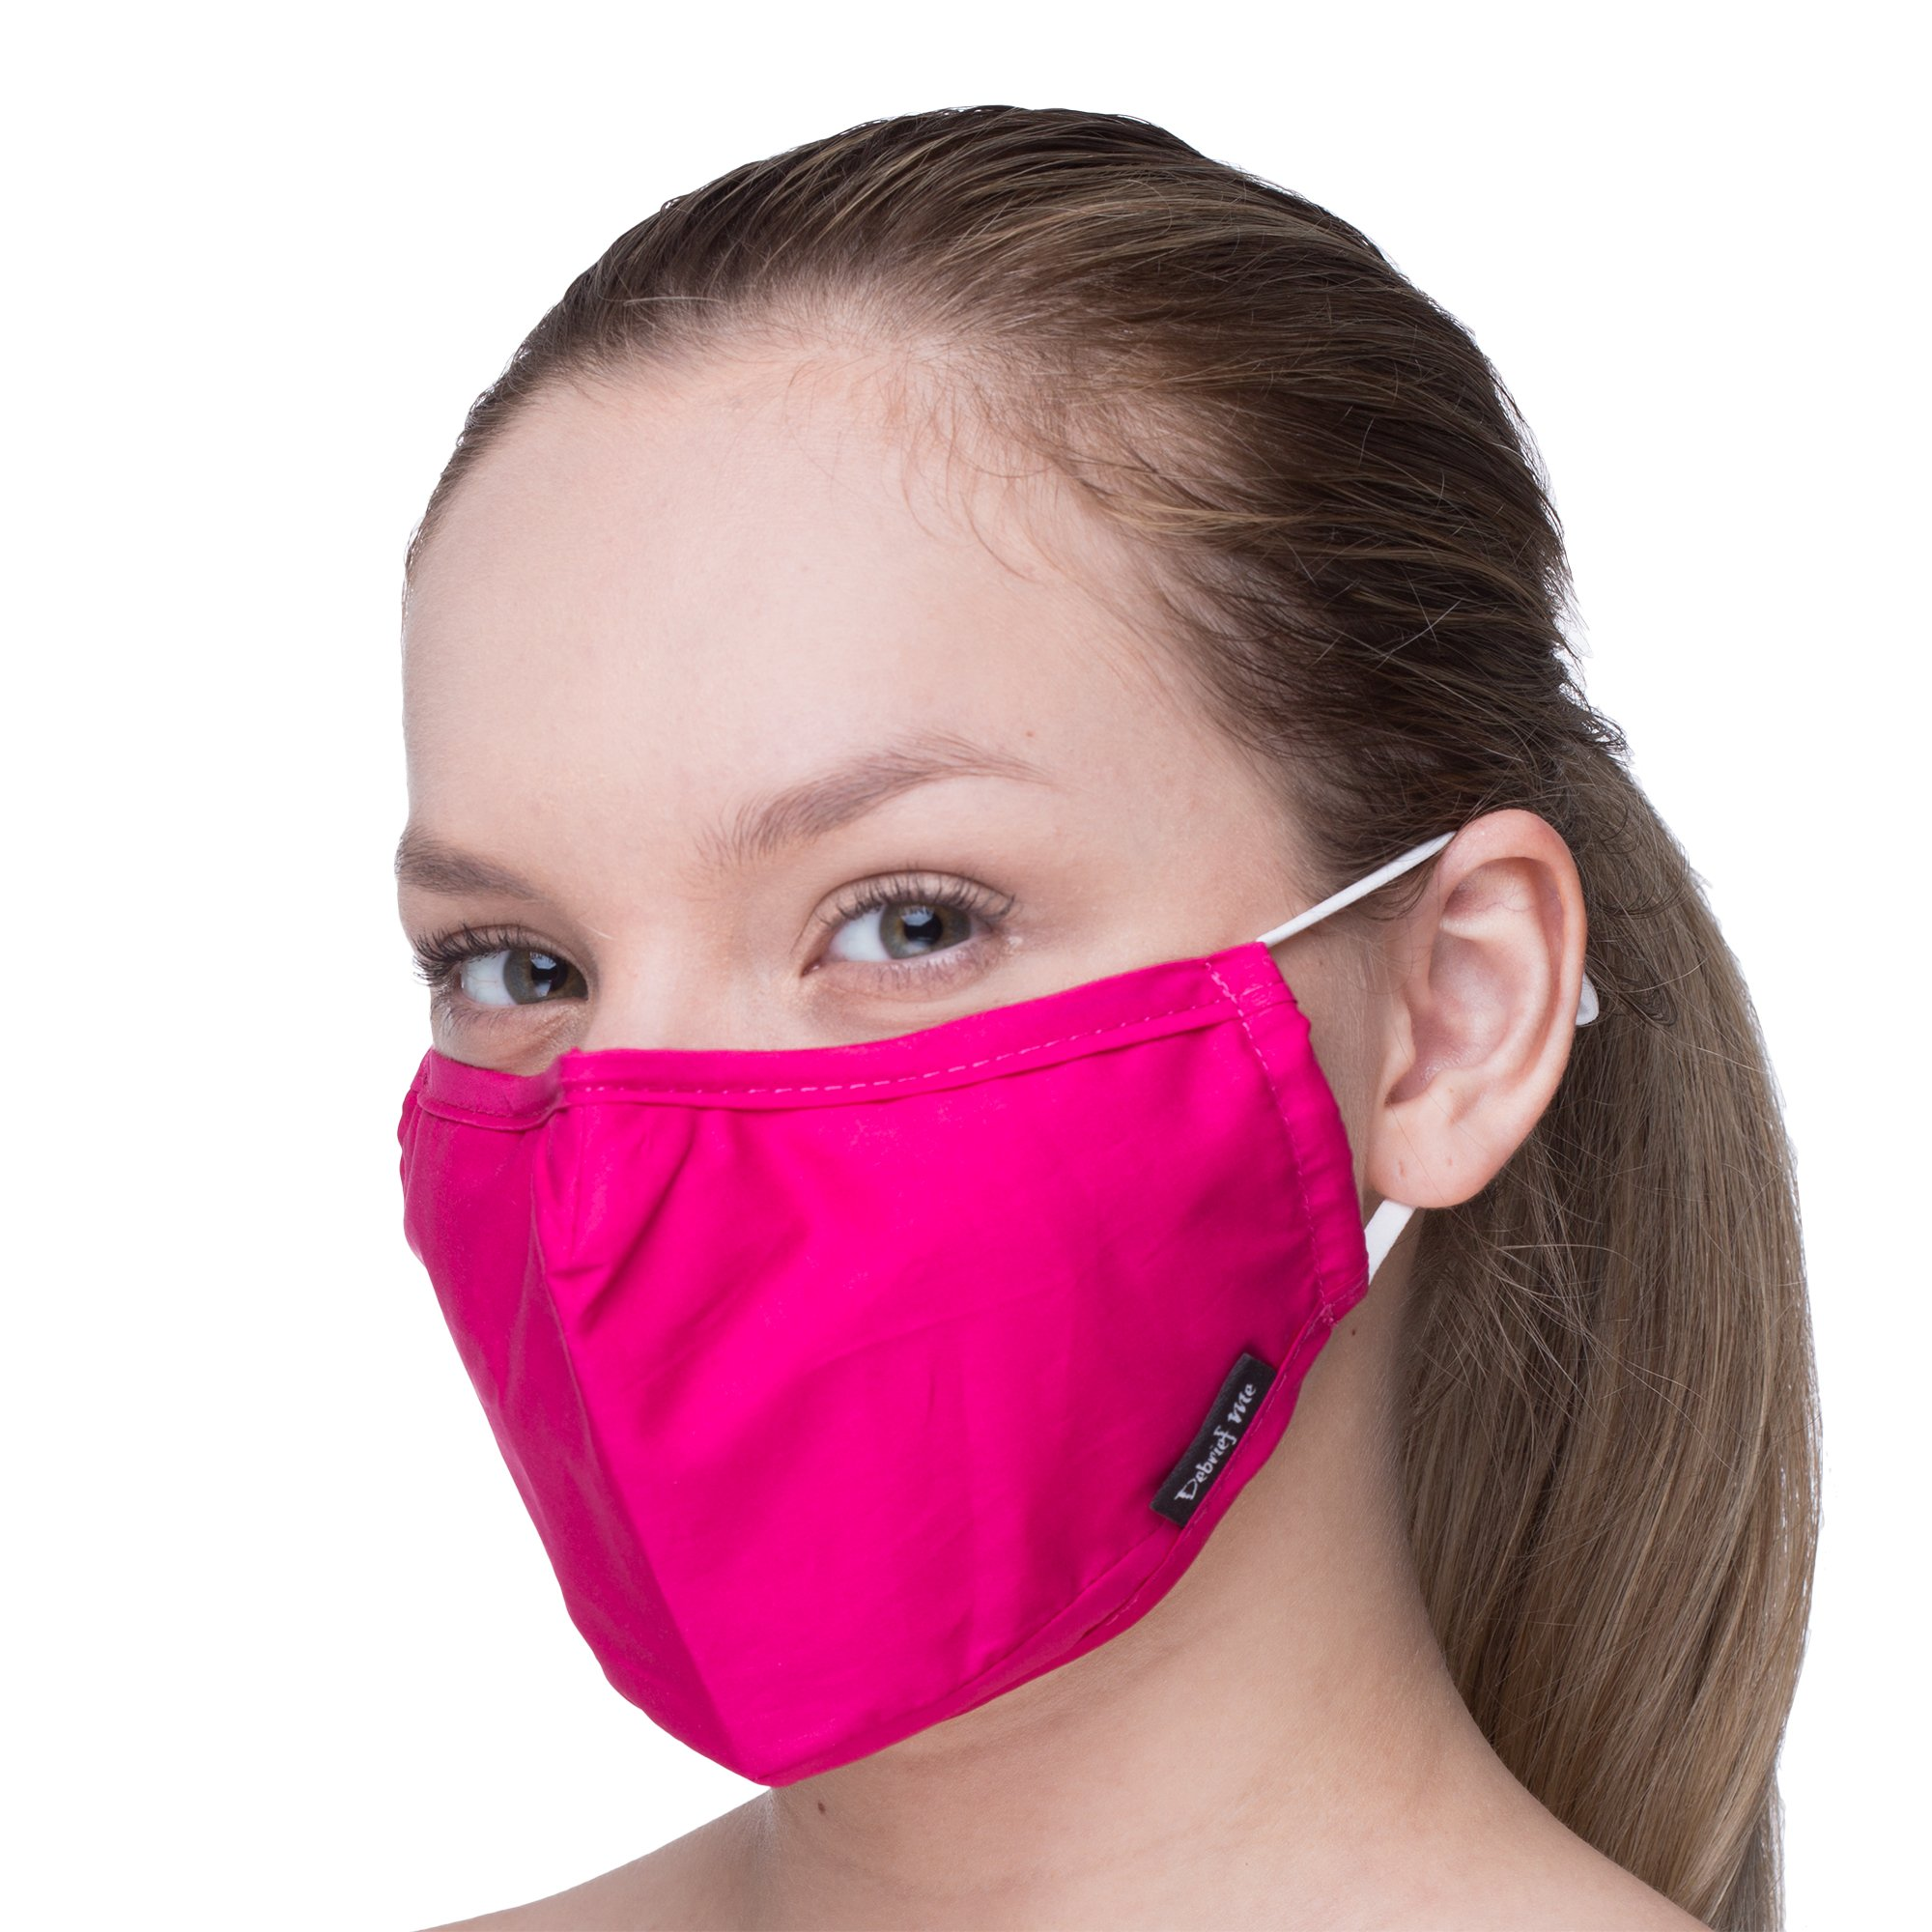 Anti Dust Face Mouth Cover Mask Respirator - Dustproof Anti-bacterial Washable - Reusable masks Respirator Comfy - Cotton Germ Protective Breath Healthy Safety Warm Windproof Mask (Power Pink)